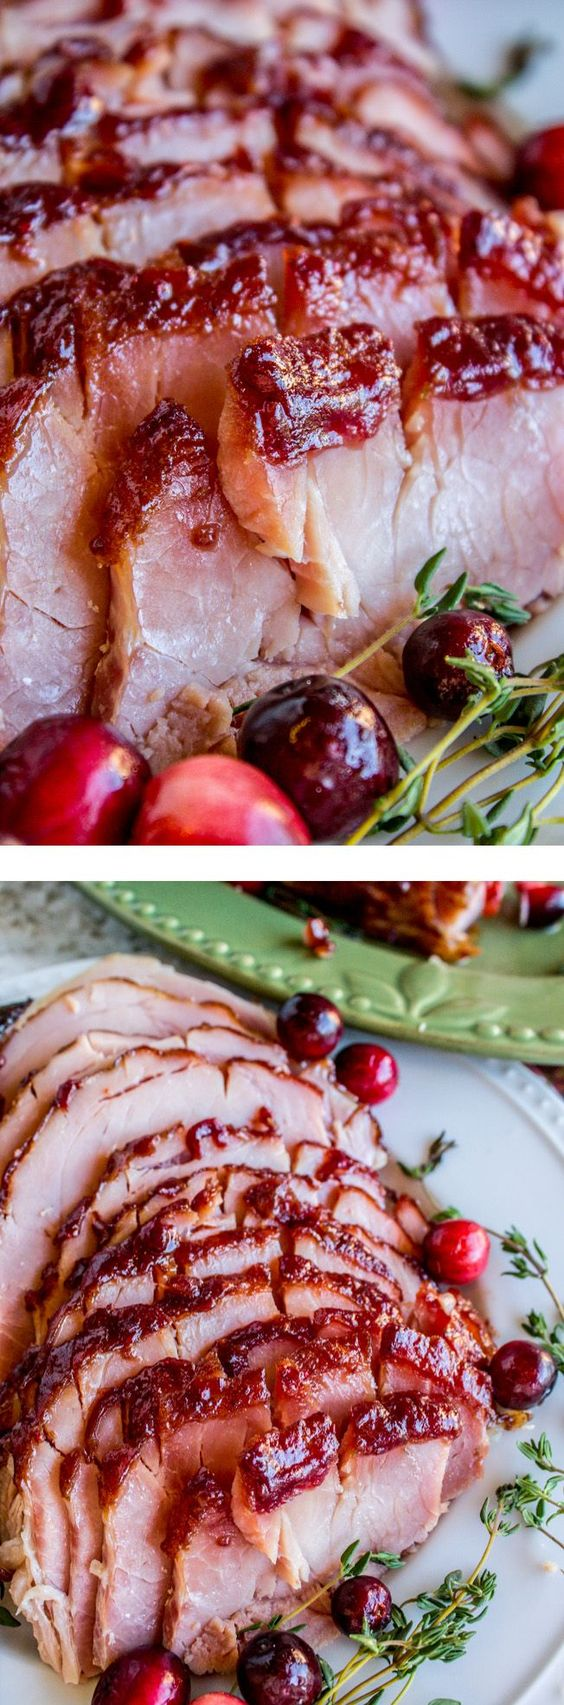 Oven roasted Cranberry Dijon Glazed Ham from The Food Charlatan. Ain't nothin better than an oven-roasted glazed ham I say! This recipe uses fresh cranberries, meaning it's perfect for the holiday season! I love the zing that the dijon mustard adds too. It's super easy to throw together! Make it for Thanksgiving, Christmas, Easter, or Sunday dinner!: